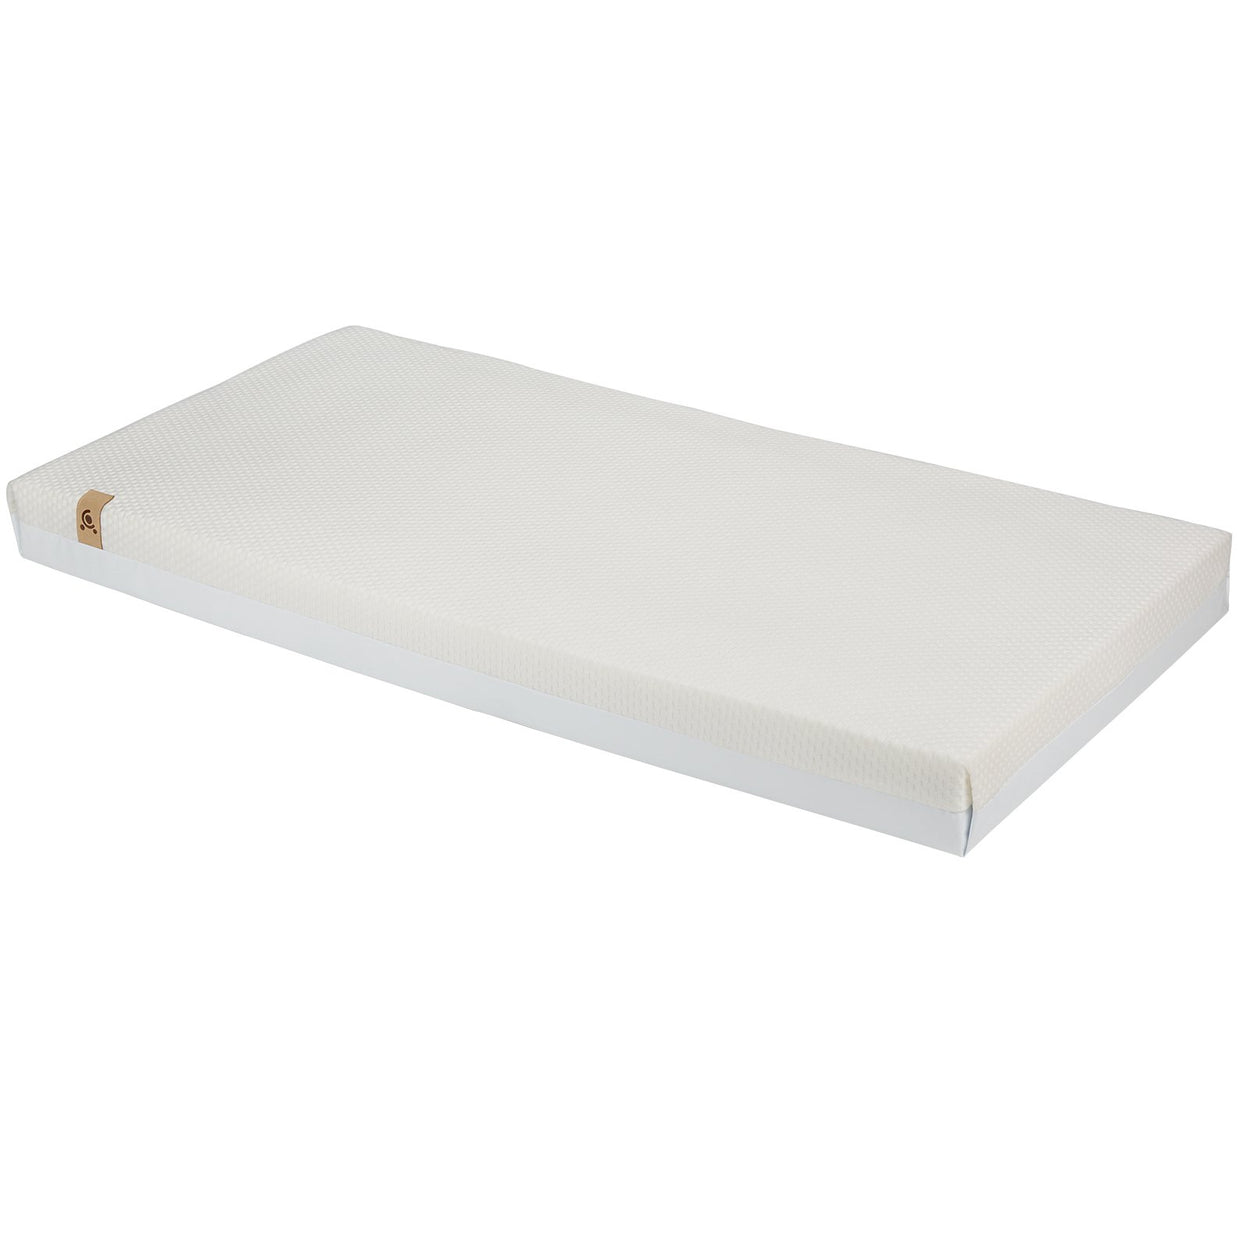 Signature Hypo-Allergenic Bamboo Pocket Sprung Cot Bed Mattress 140 x 70cm CuddleCo